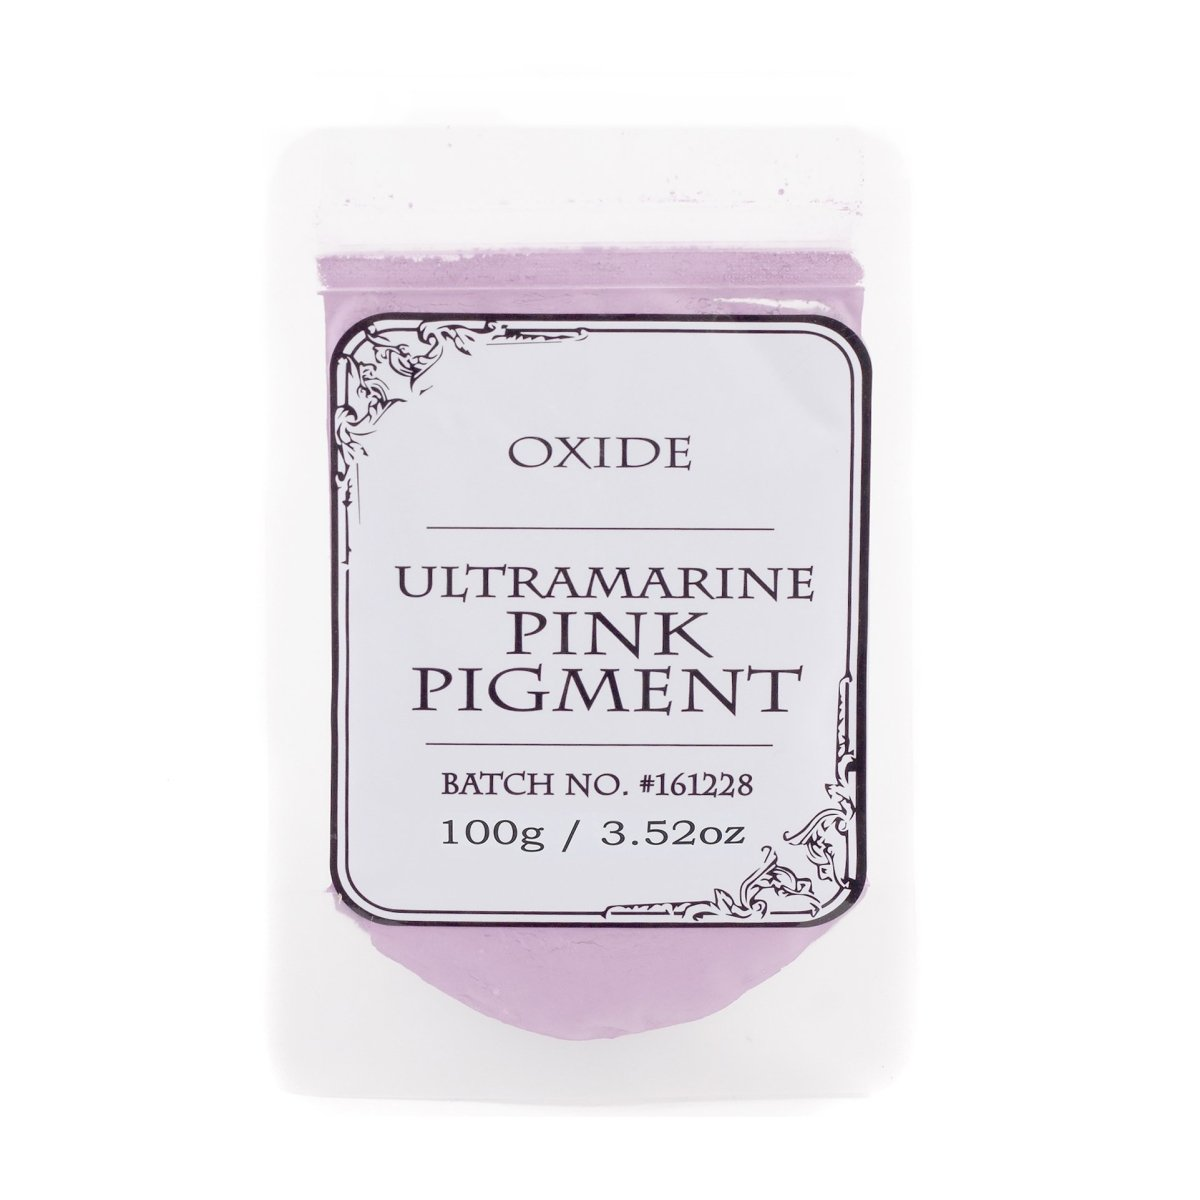 Ultramarine Pink Pigment Oxide Mineral Powder - Mystic Moments UK